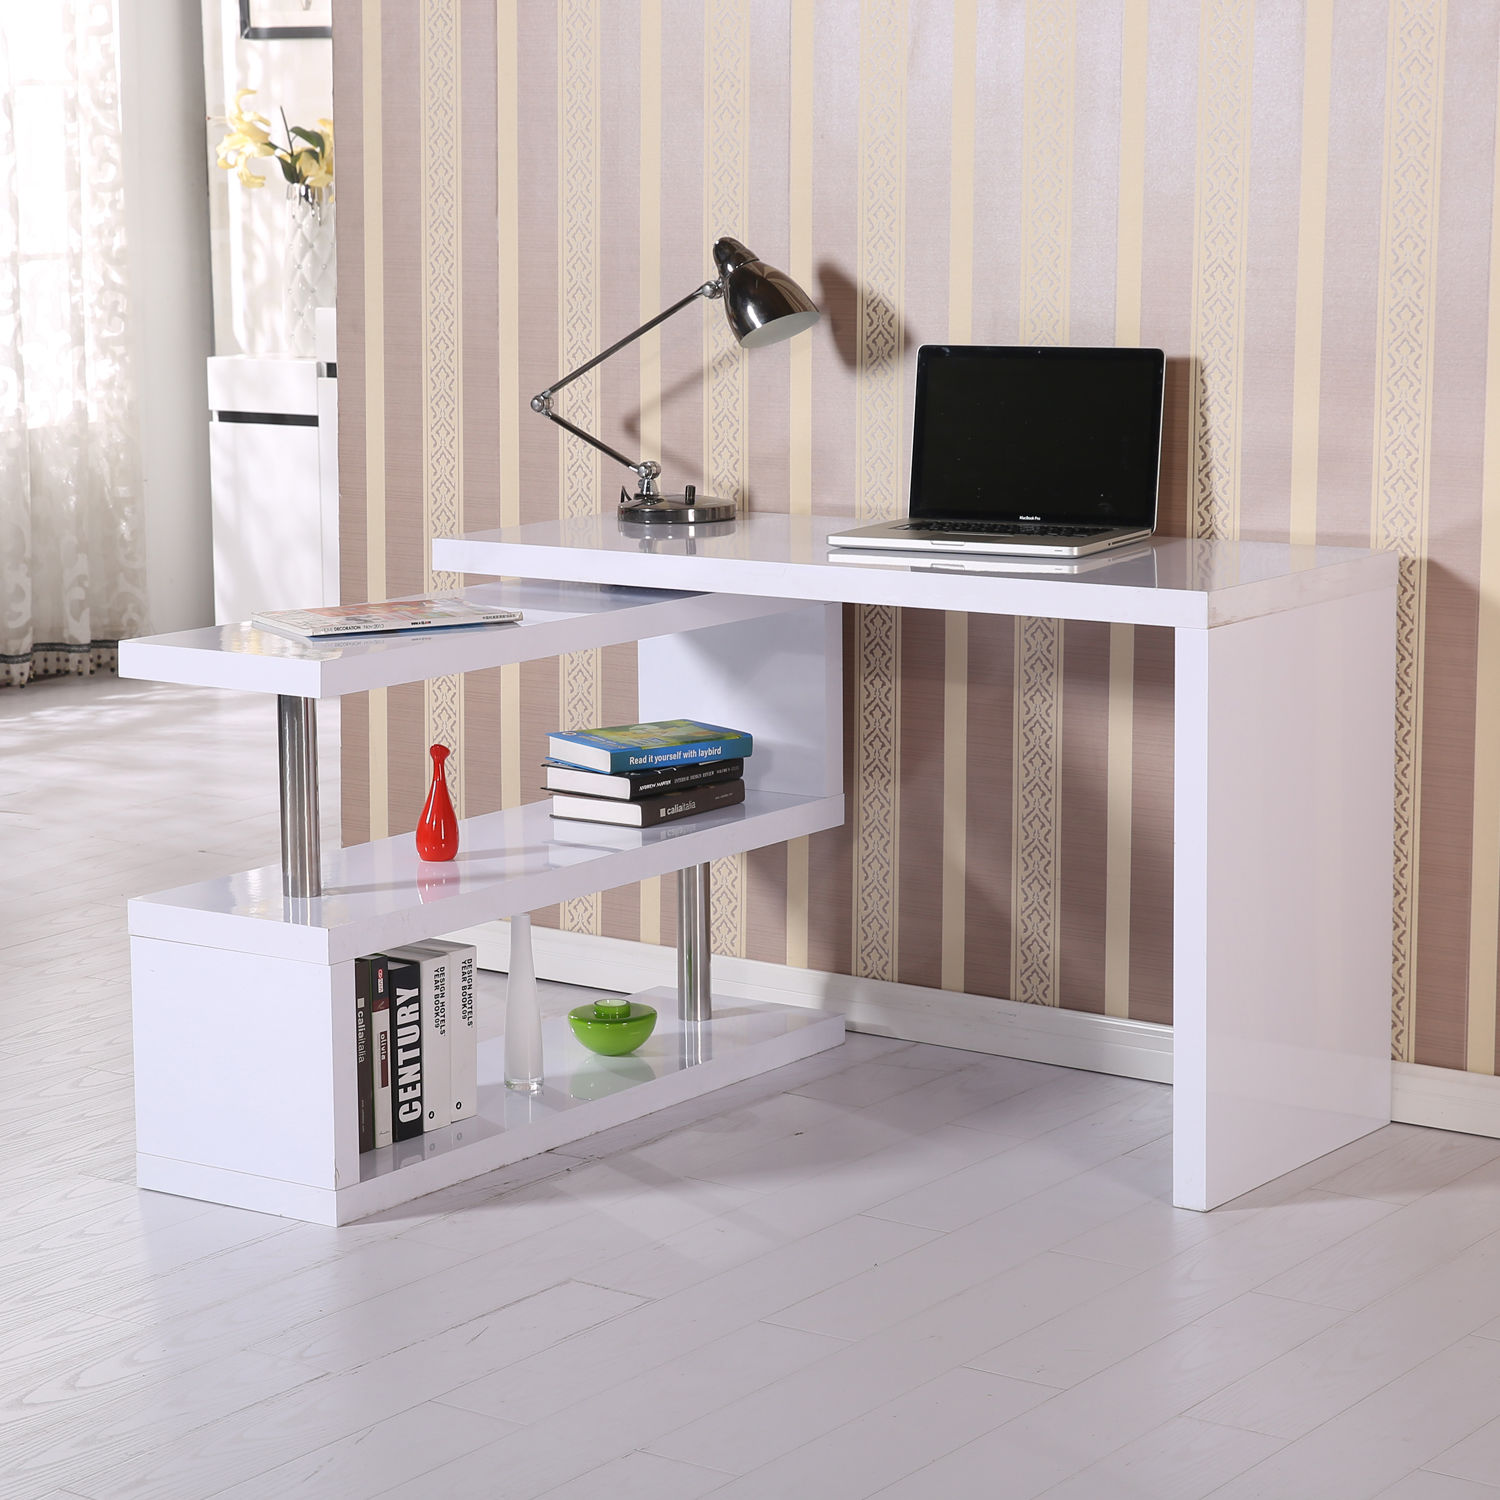 HomCom 360 Degree Rotating Office Desk and Shelf Combo - White